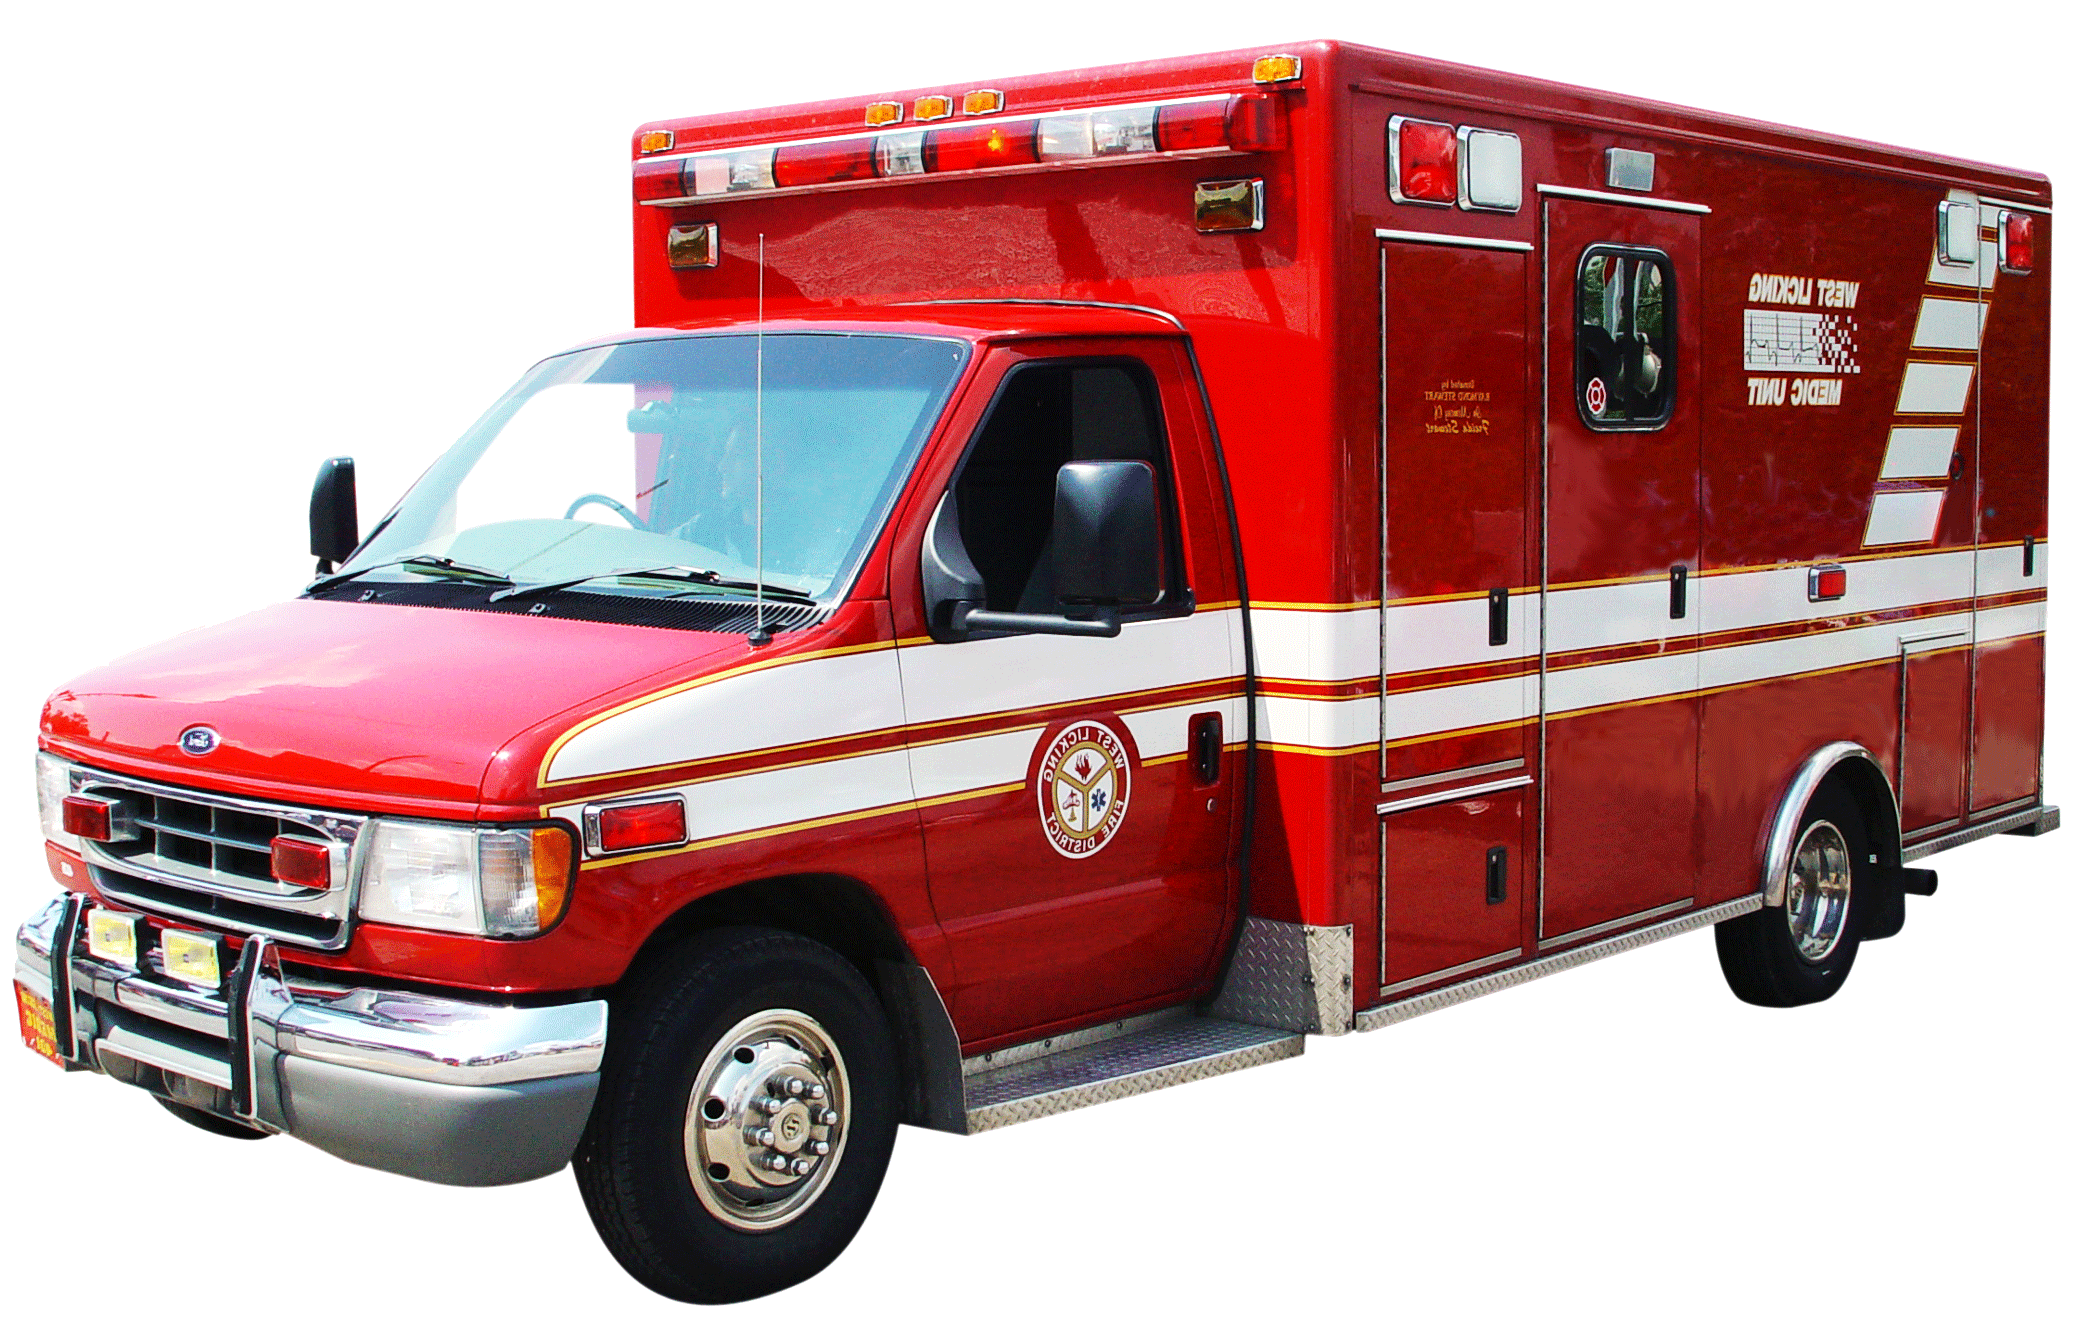 Hospital transparent ambulance clipart. Png image purepng free